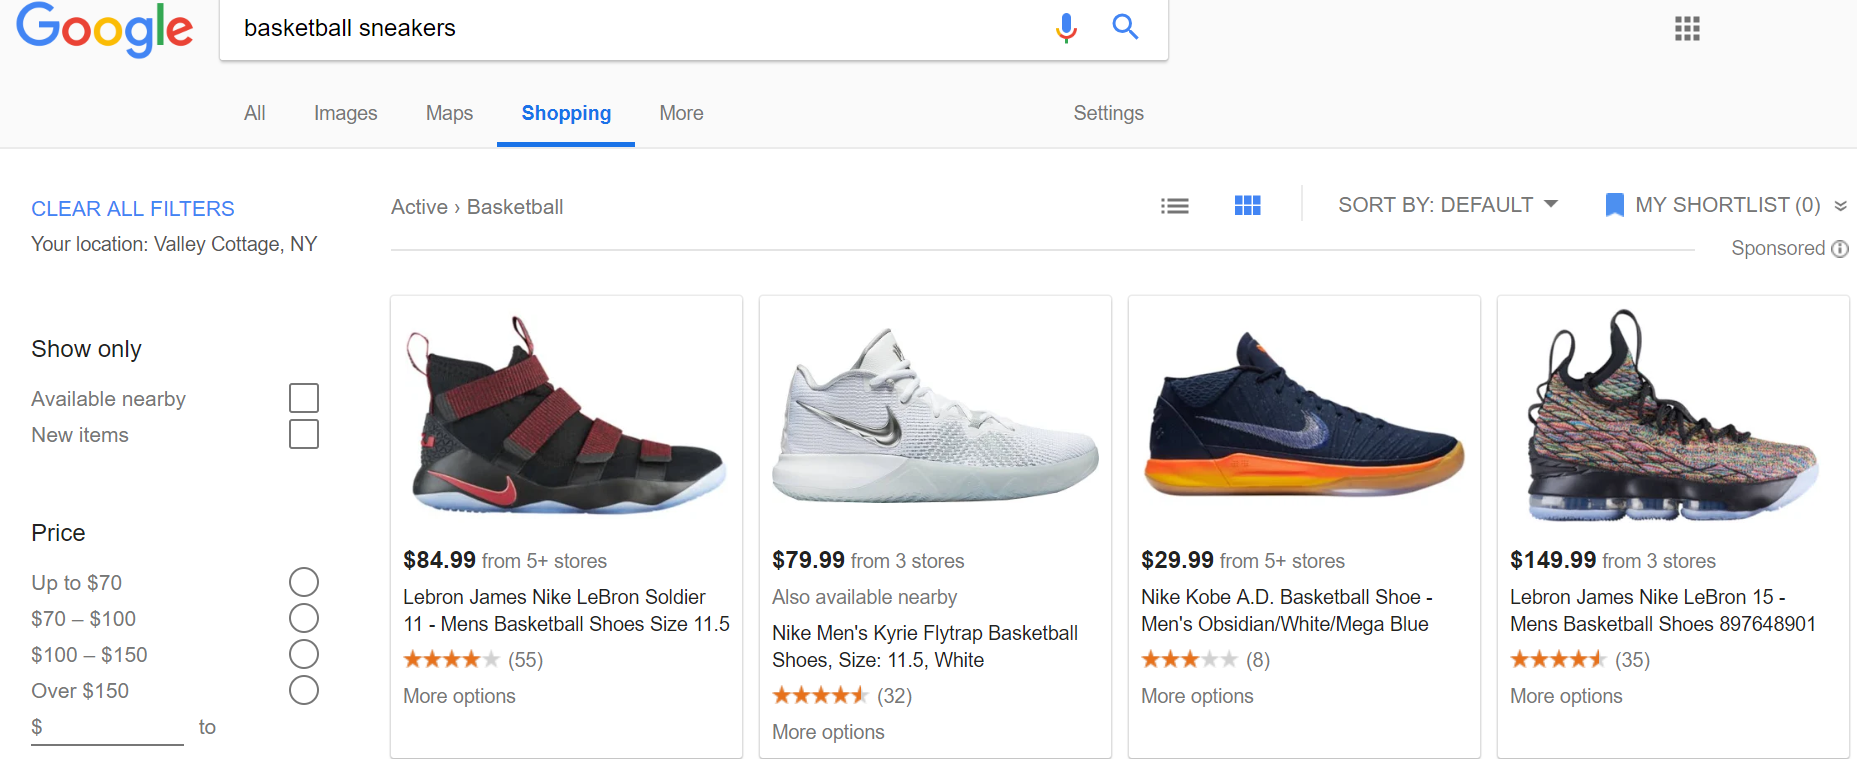 170a2b333913d Getting Started with Google Shopping